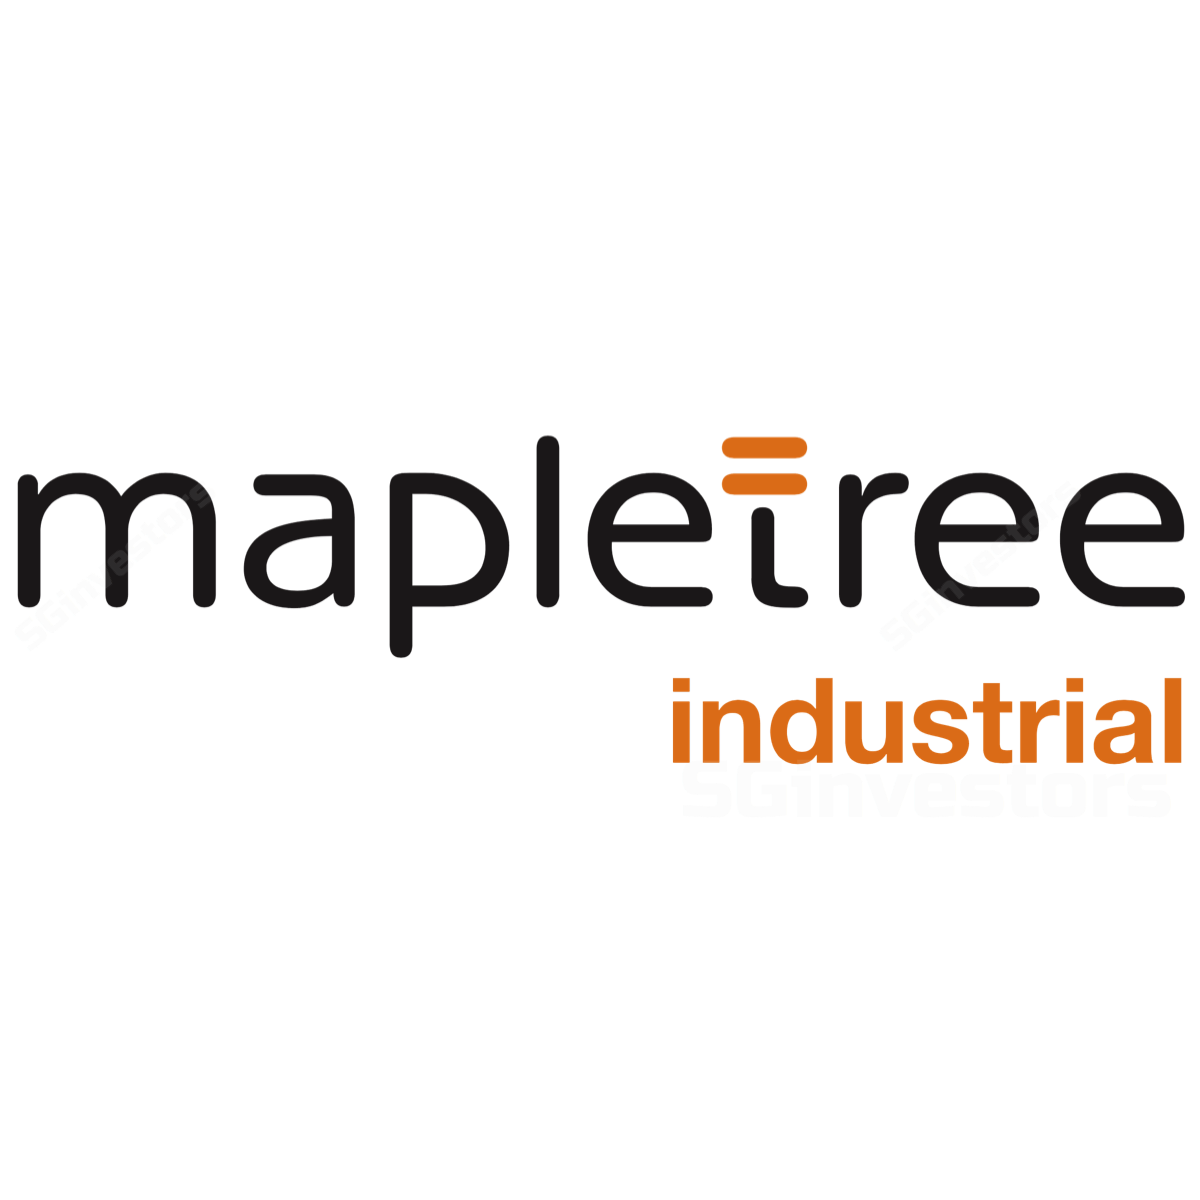 Mapletree Industrial Trust - CIMB Research 2017-03-06: Extends track record in build-to-suit data centres